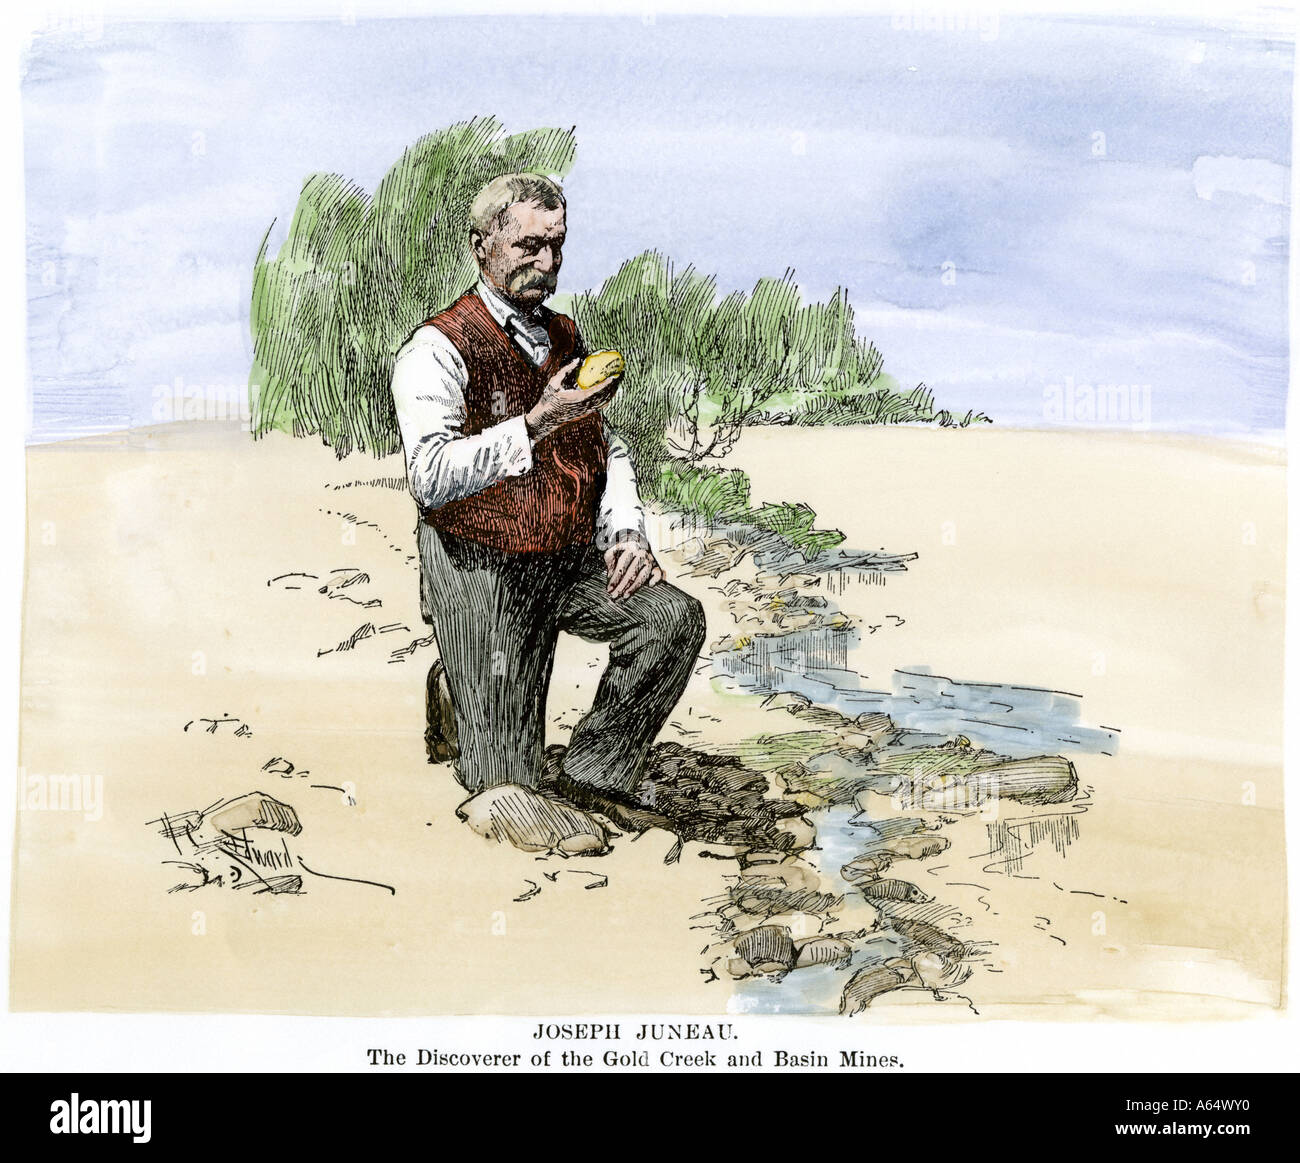 Joseph Juneau discoverer of the Gold Creek and Basin Mines in Alaska holding a gold nugget. Hand-colored woodcut - Stock Image